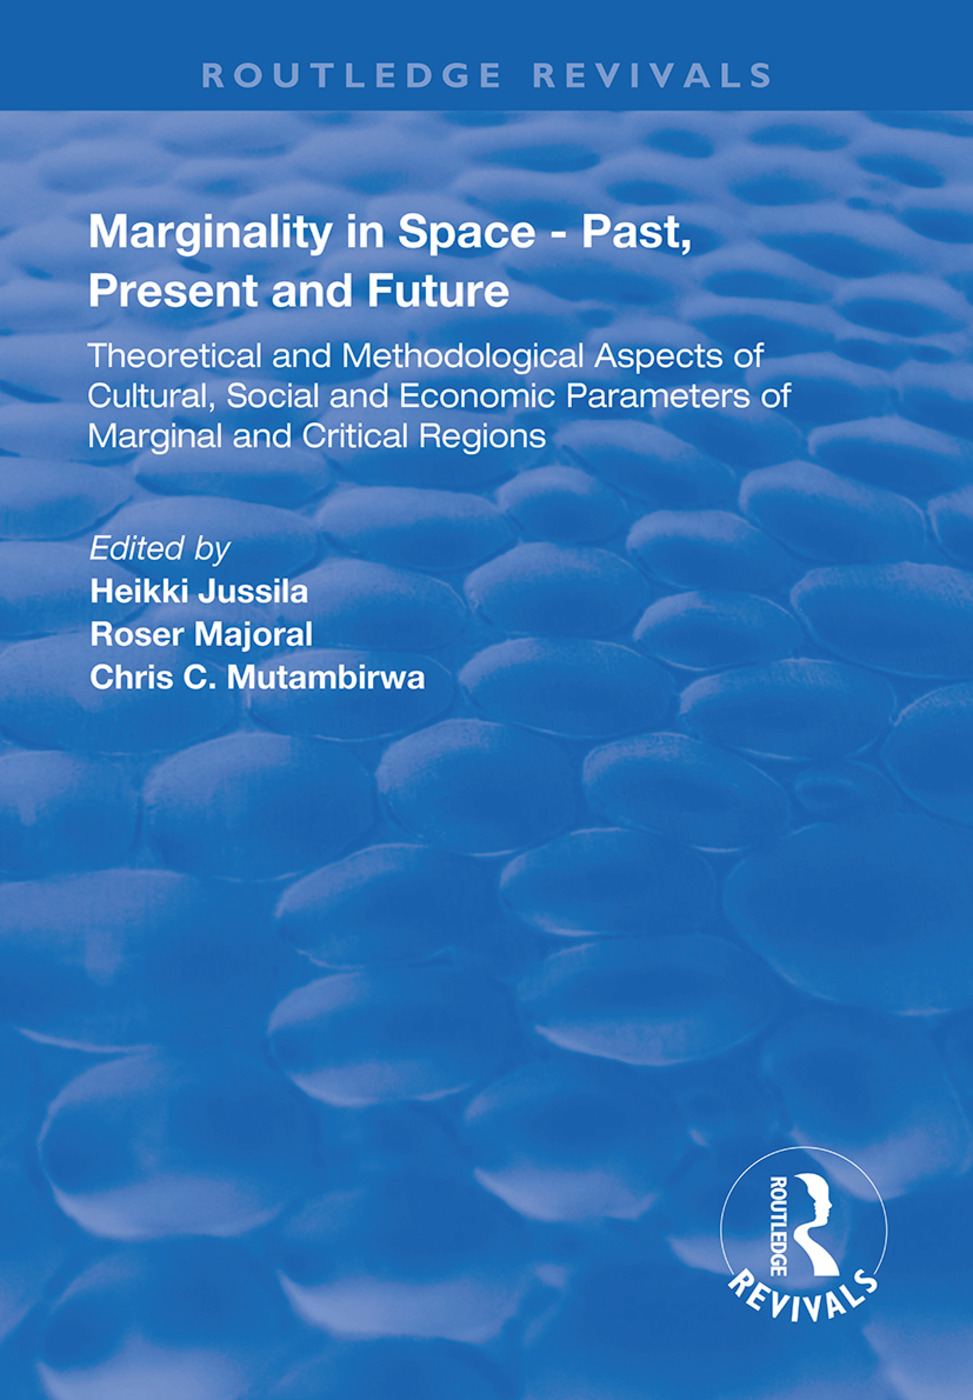 Marginality in Space - Past, Present and Future